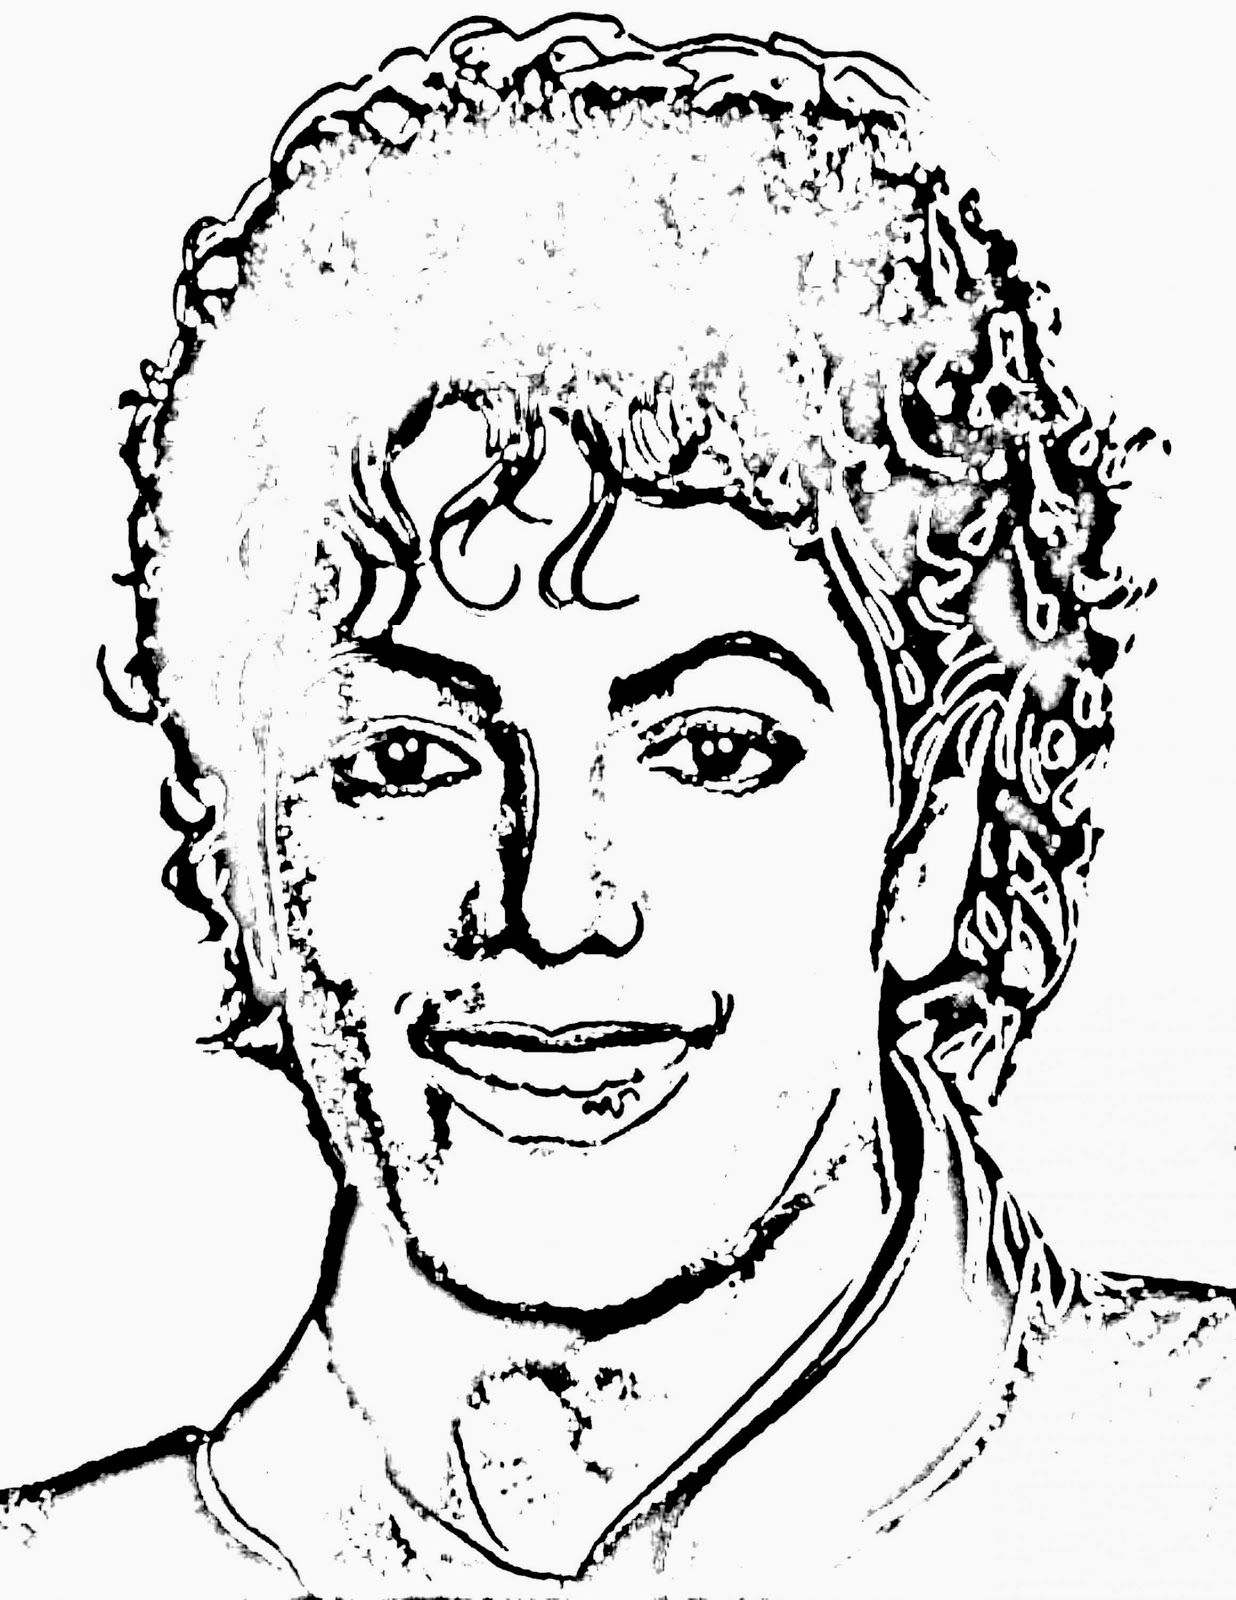 michael jackson colouring pages michael jackson coloring pages to download and print for free jackson colouring pages michael